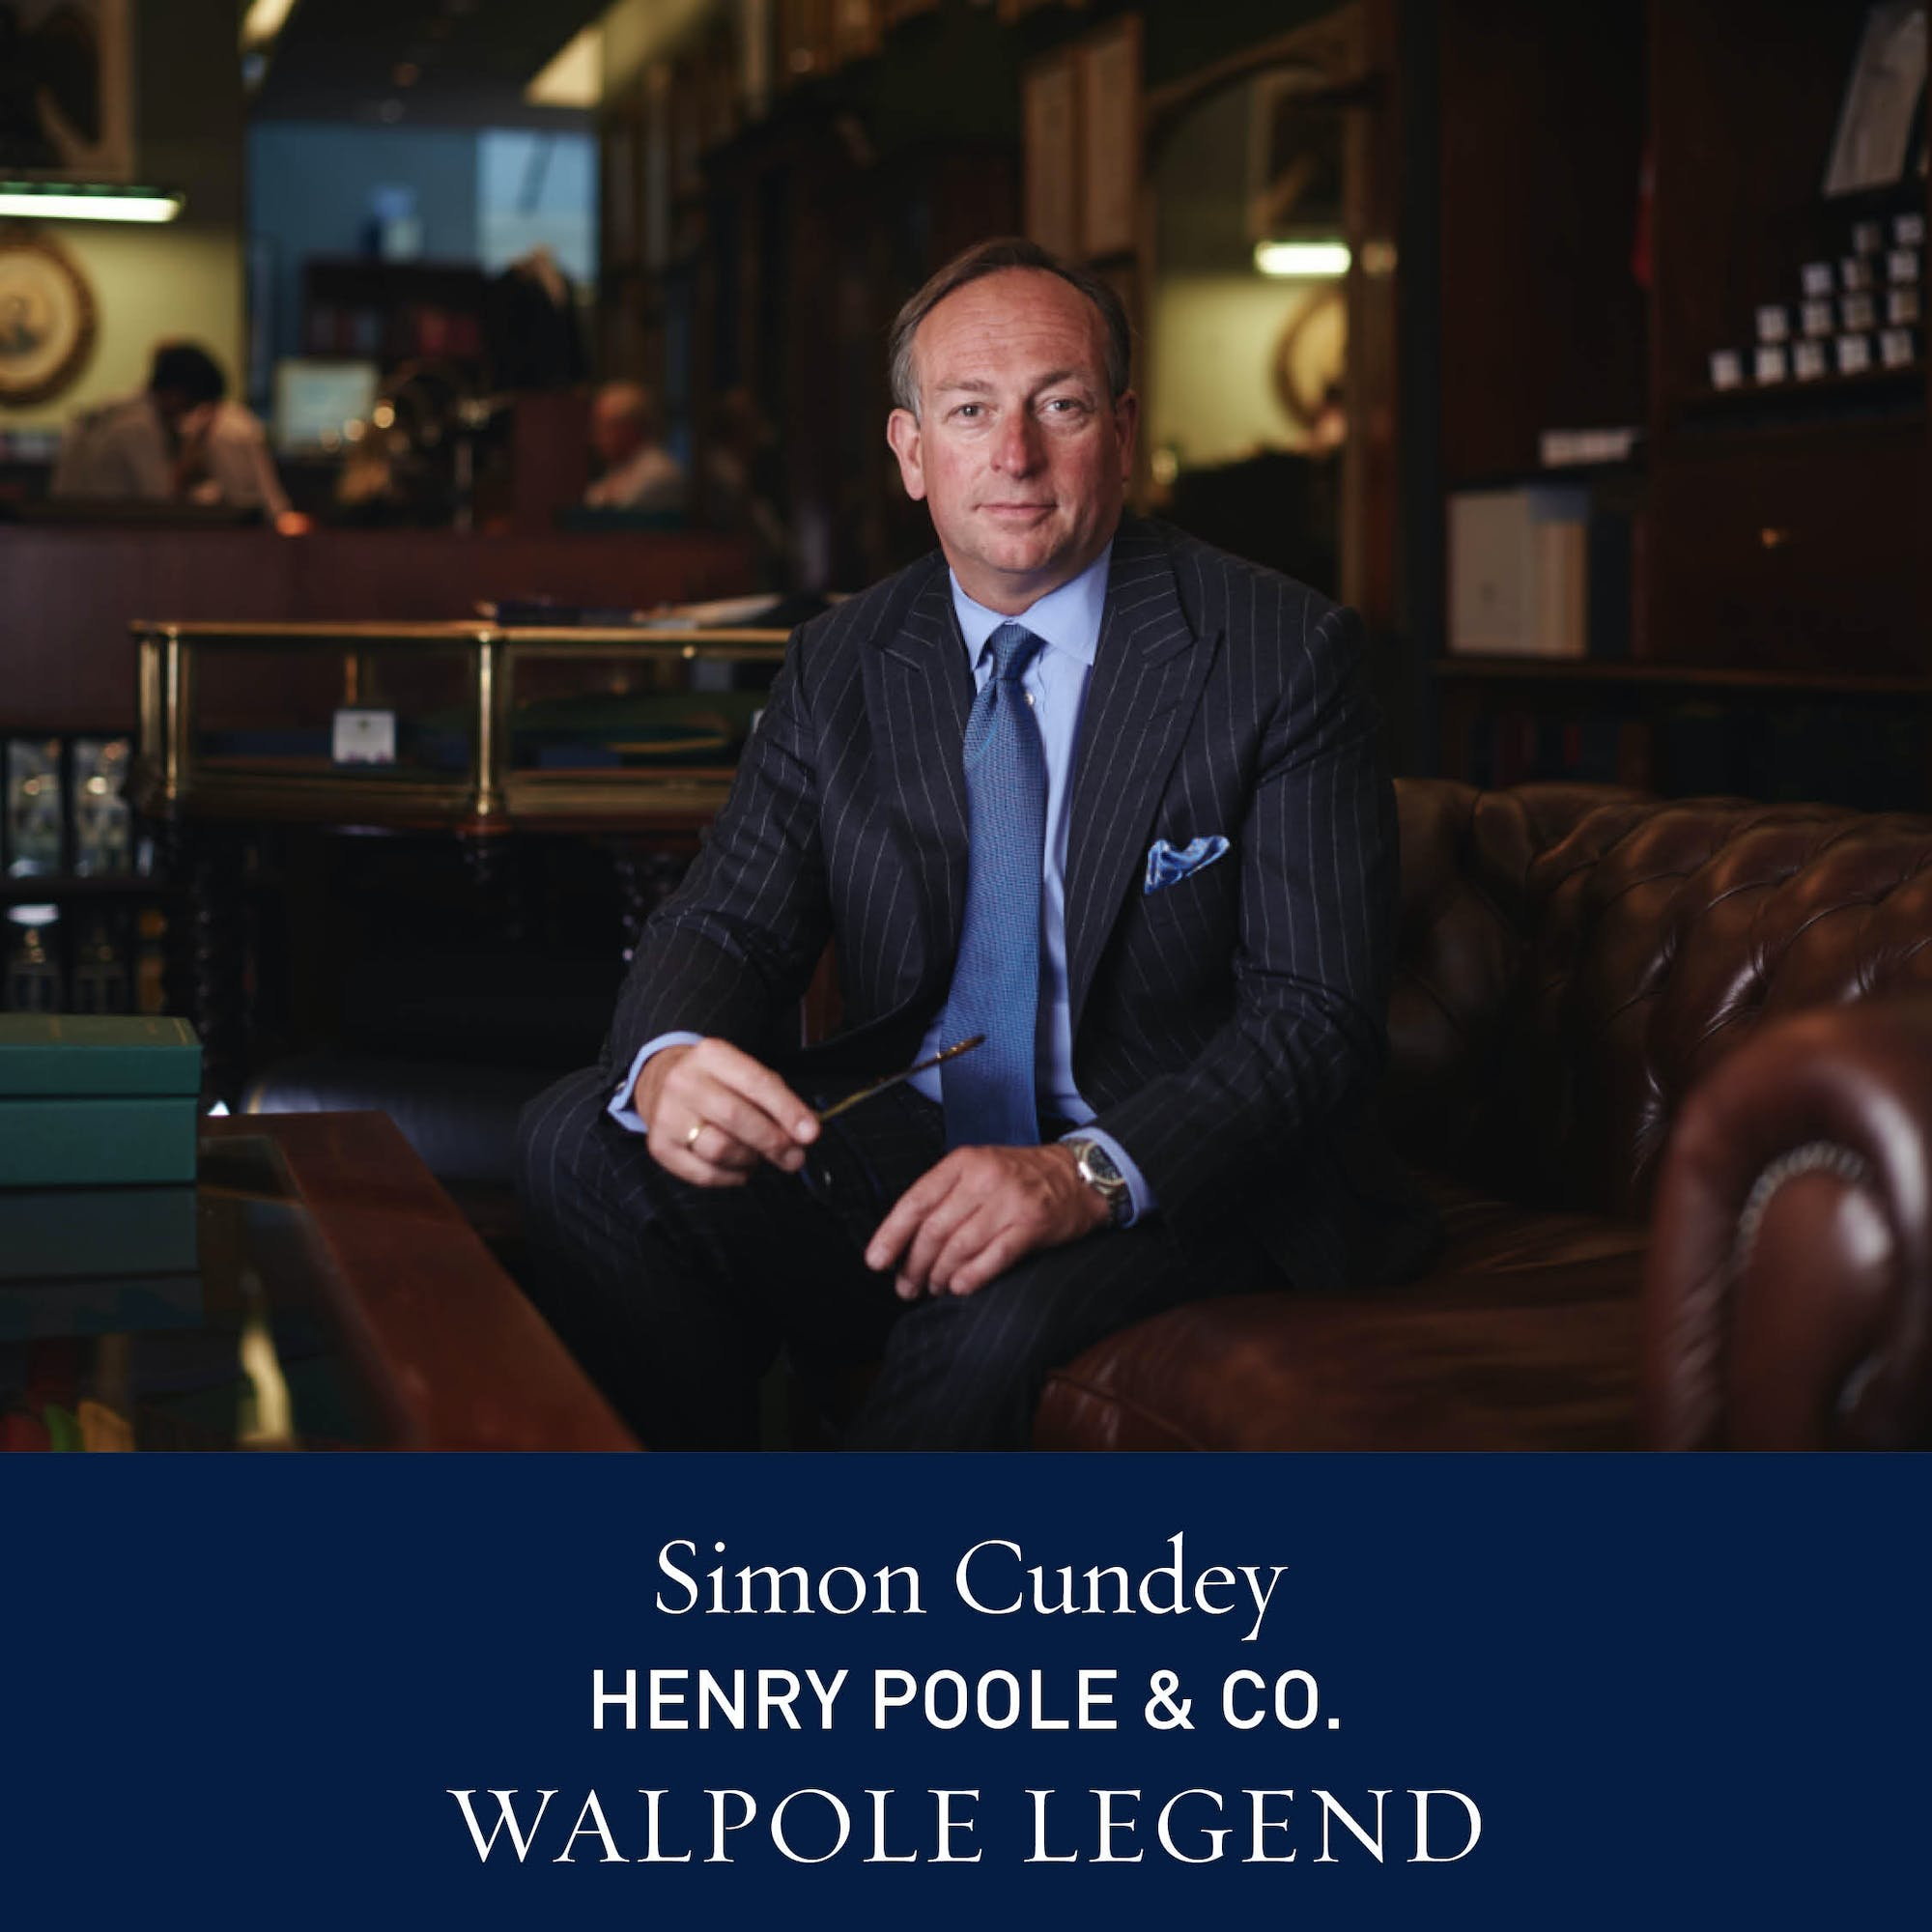 The Walpole Power List  Legends: Simon Cundey, Managing Director, Henry Poole